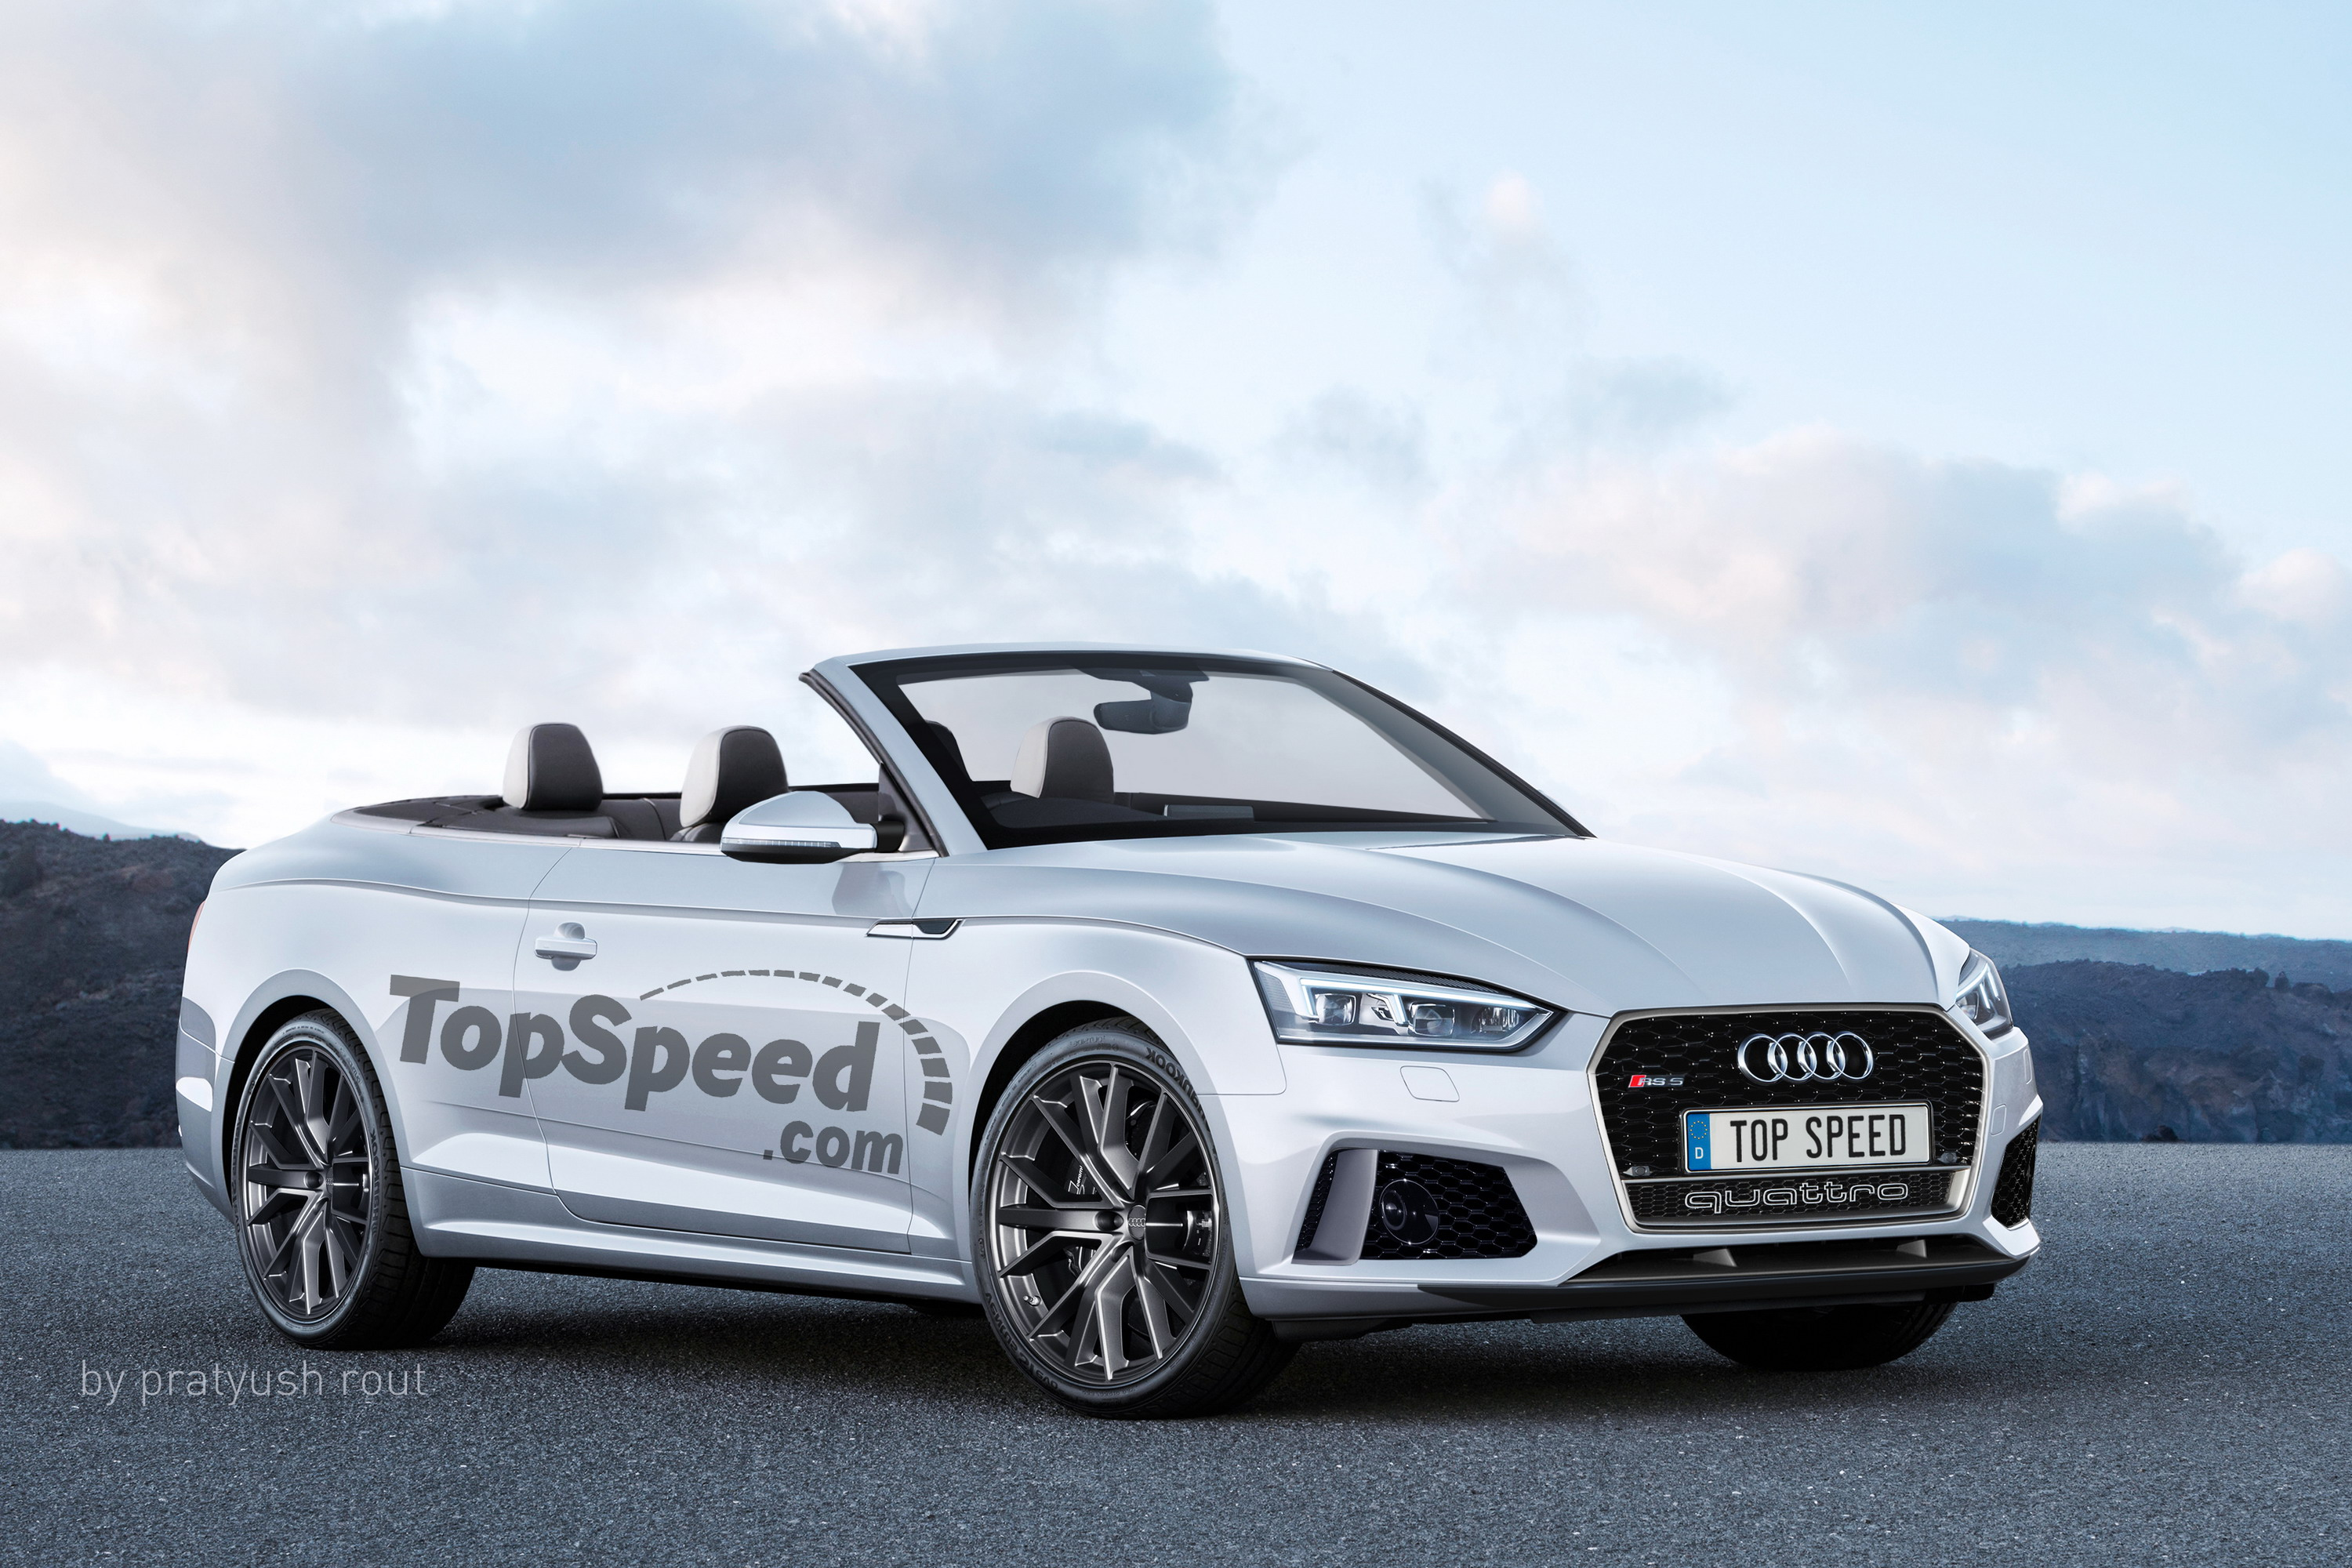 2018 Audi Rs5 Cabriolet Top Speed